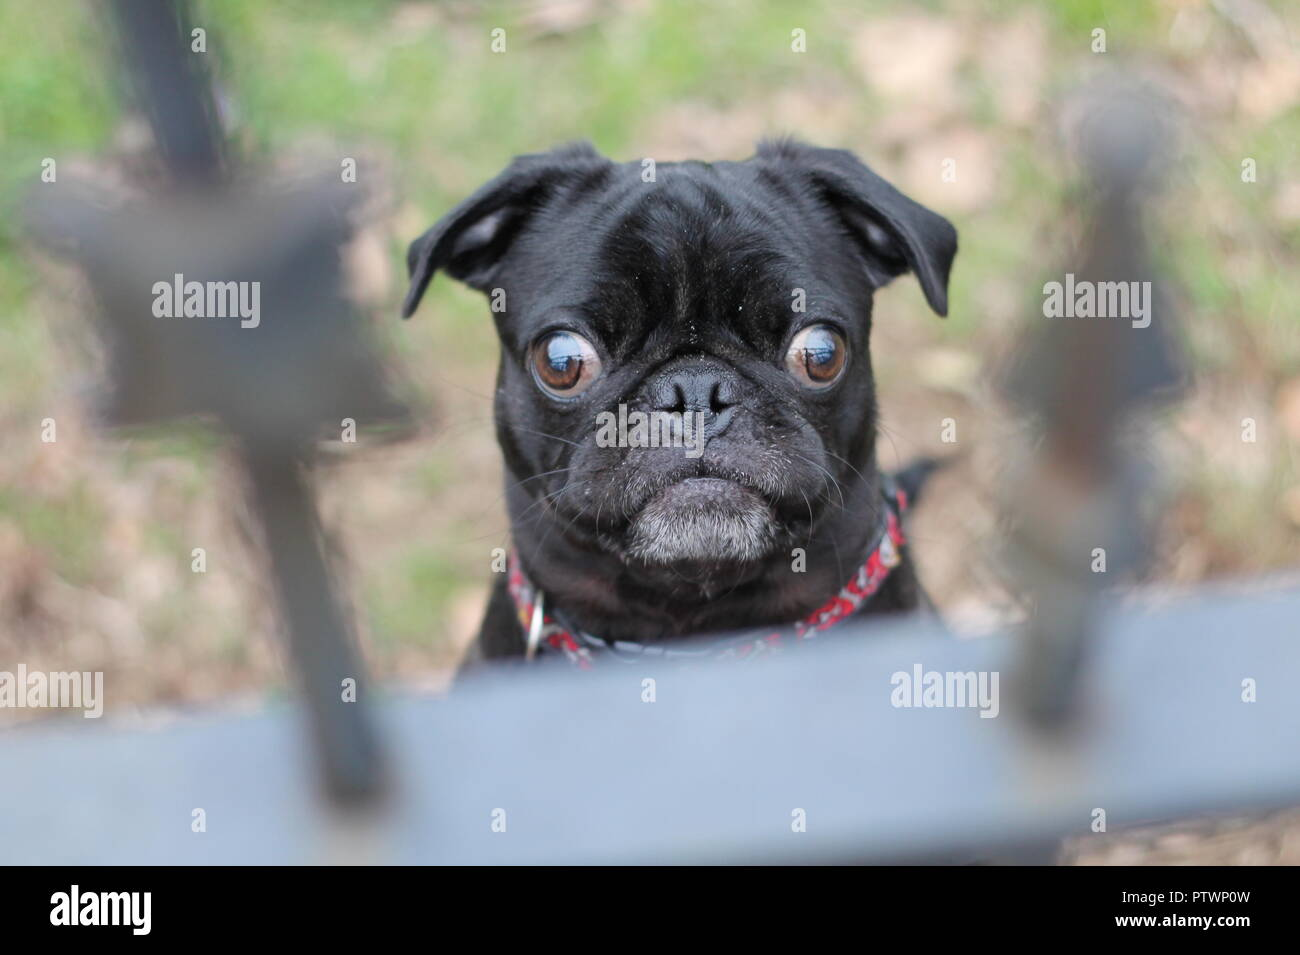 Purebred pug looking through a fence - Stock Image